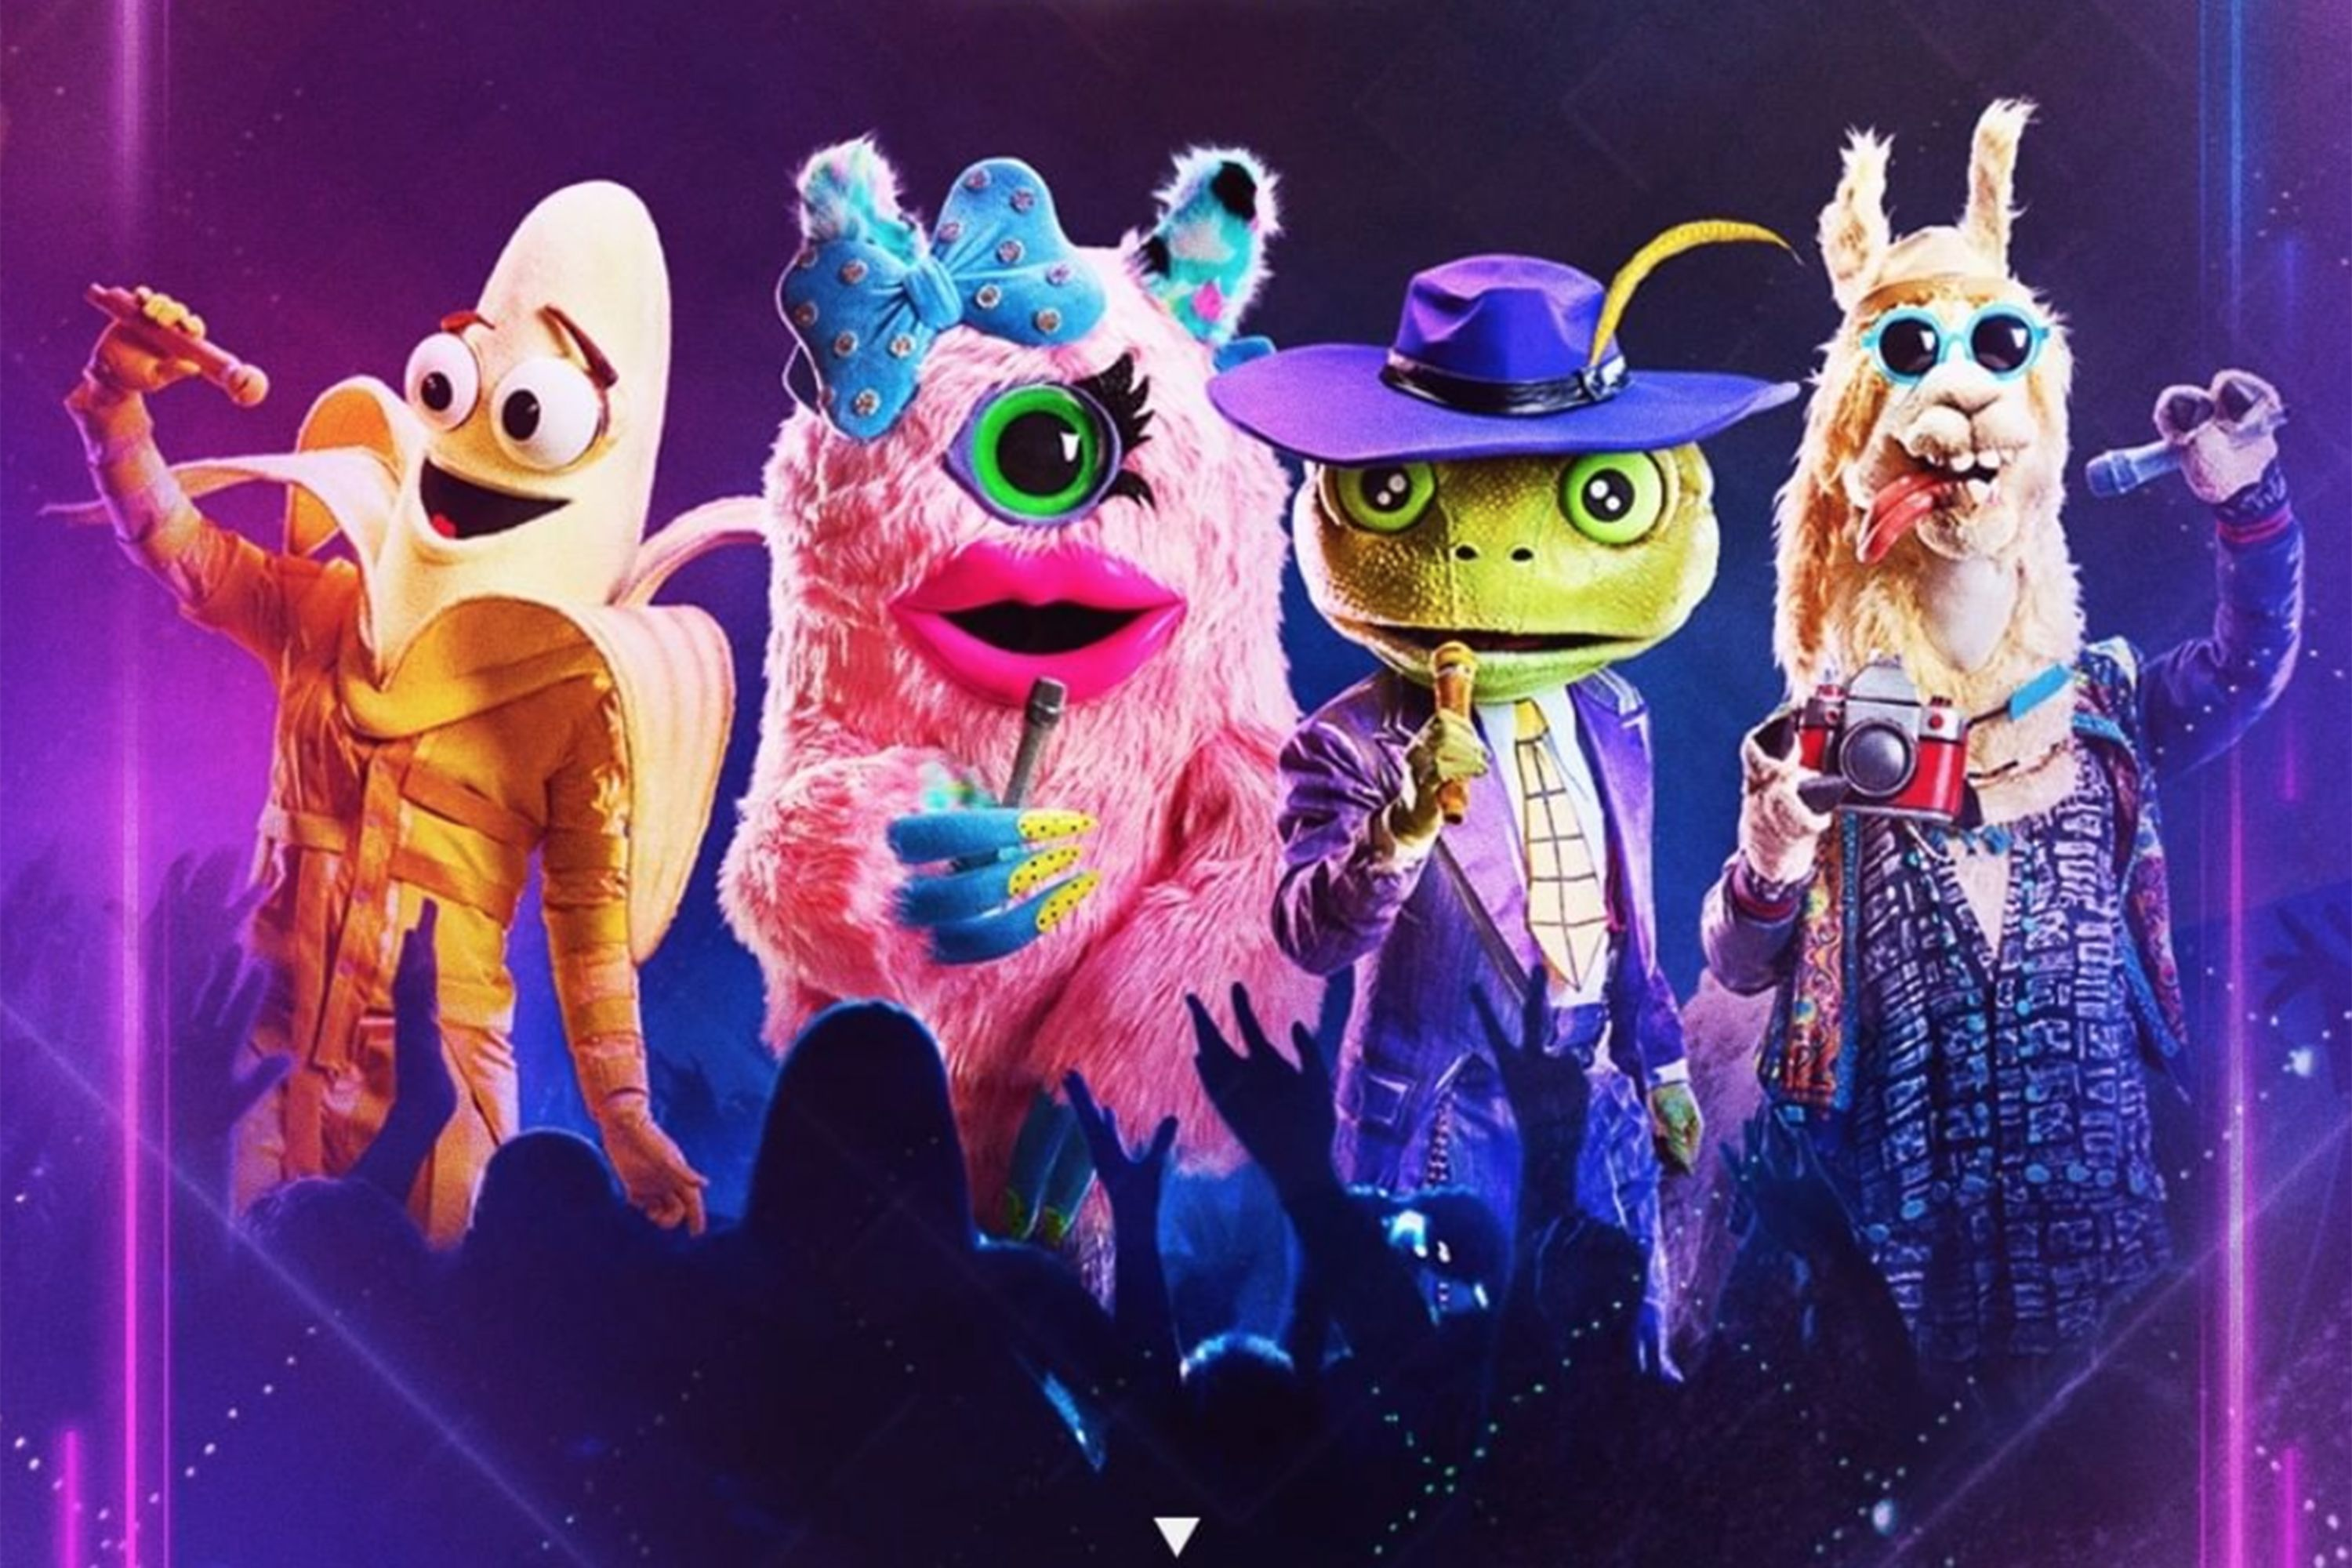 Who Is The Frog On 'The Masked Singer'? Fans Are Guessing 2 High-Profile Celebs